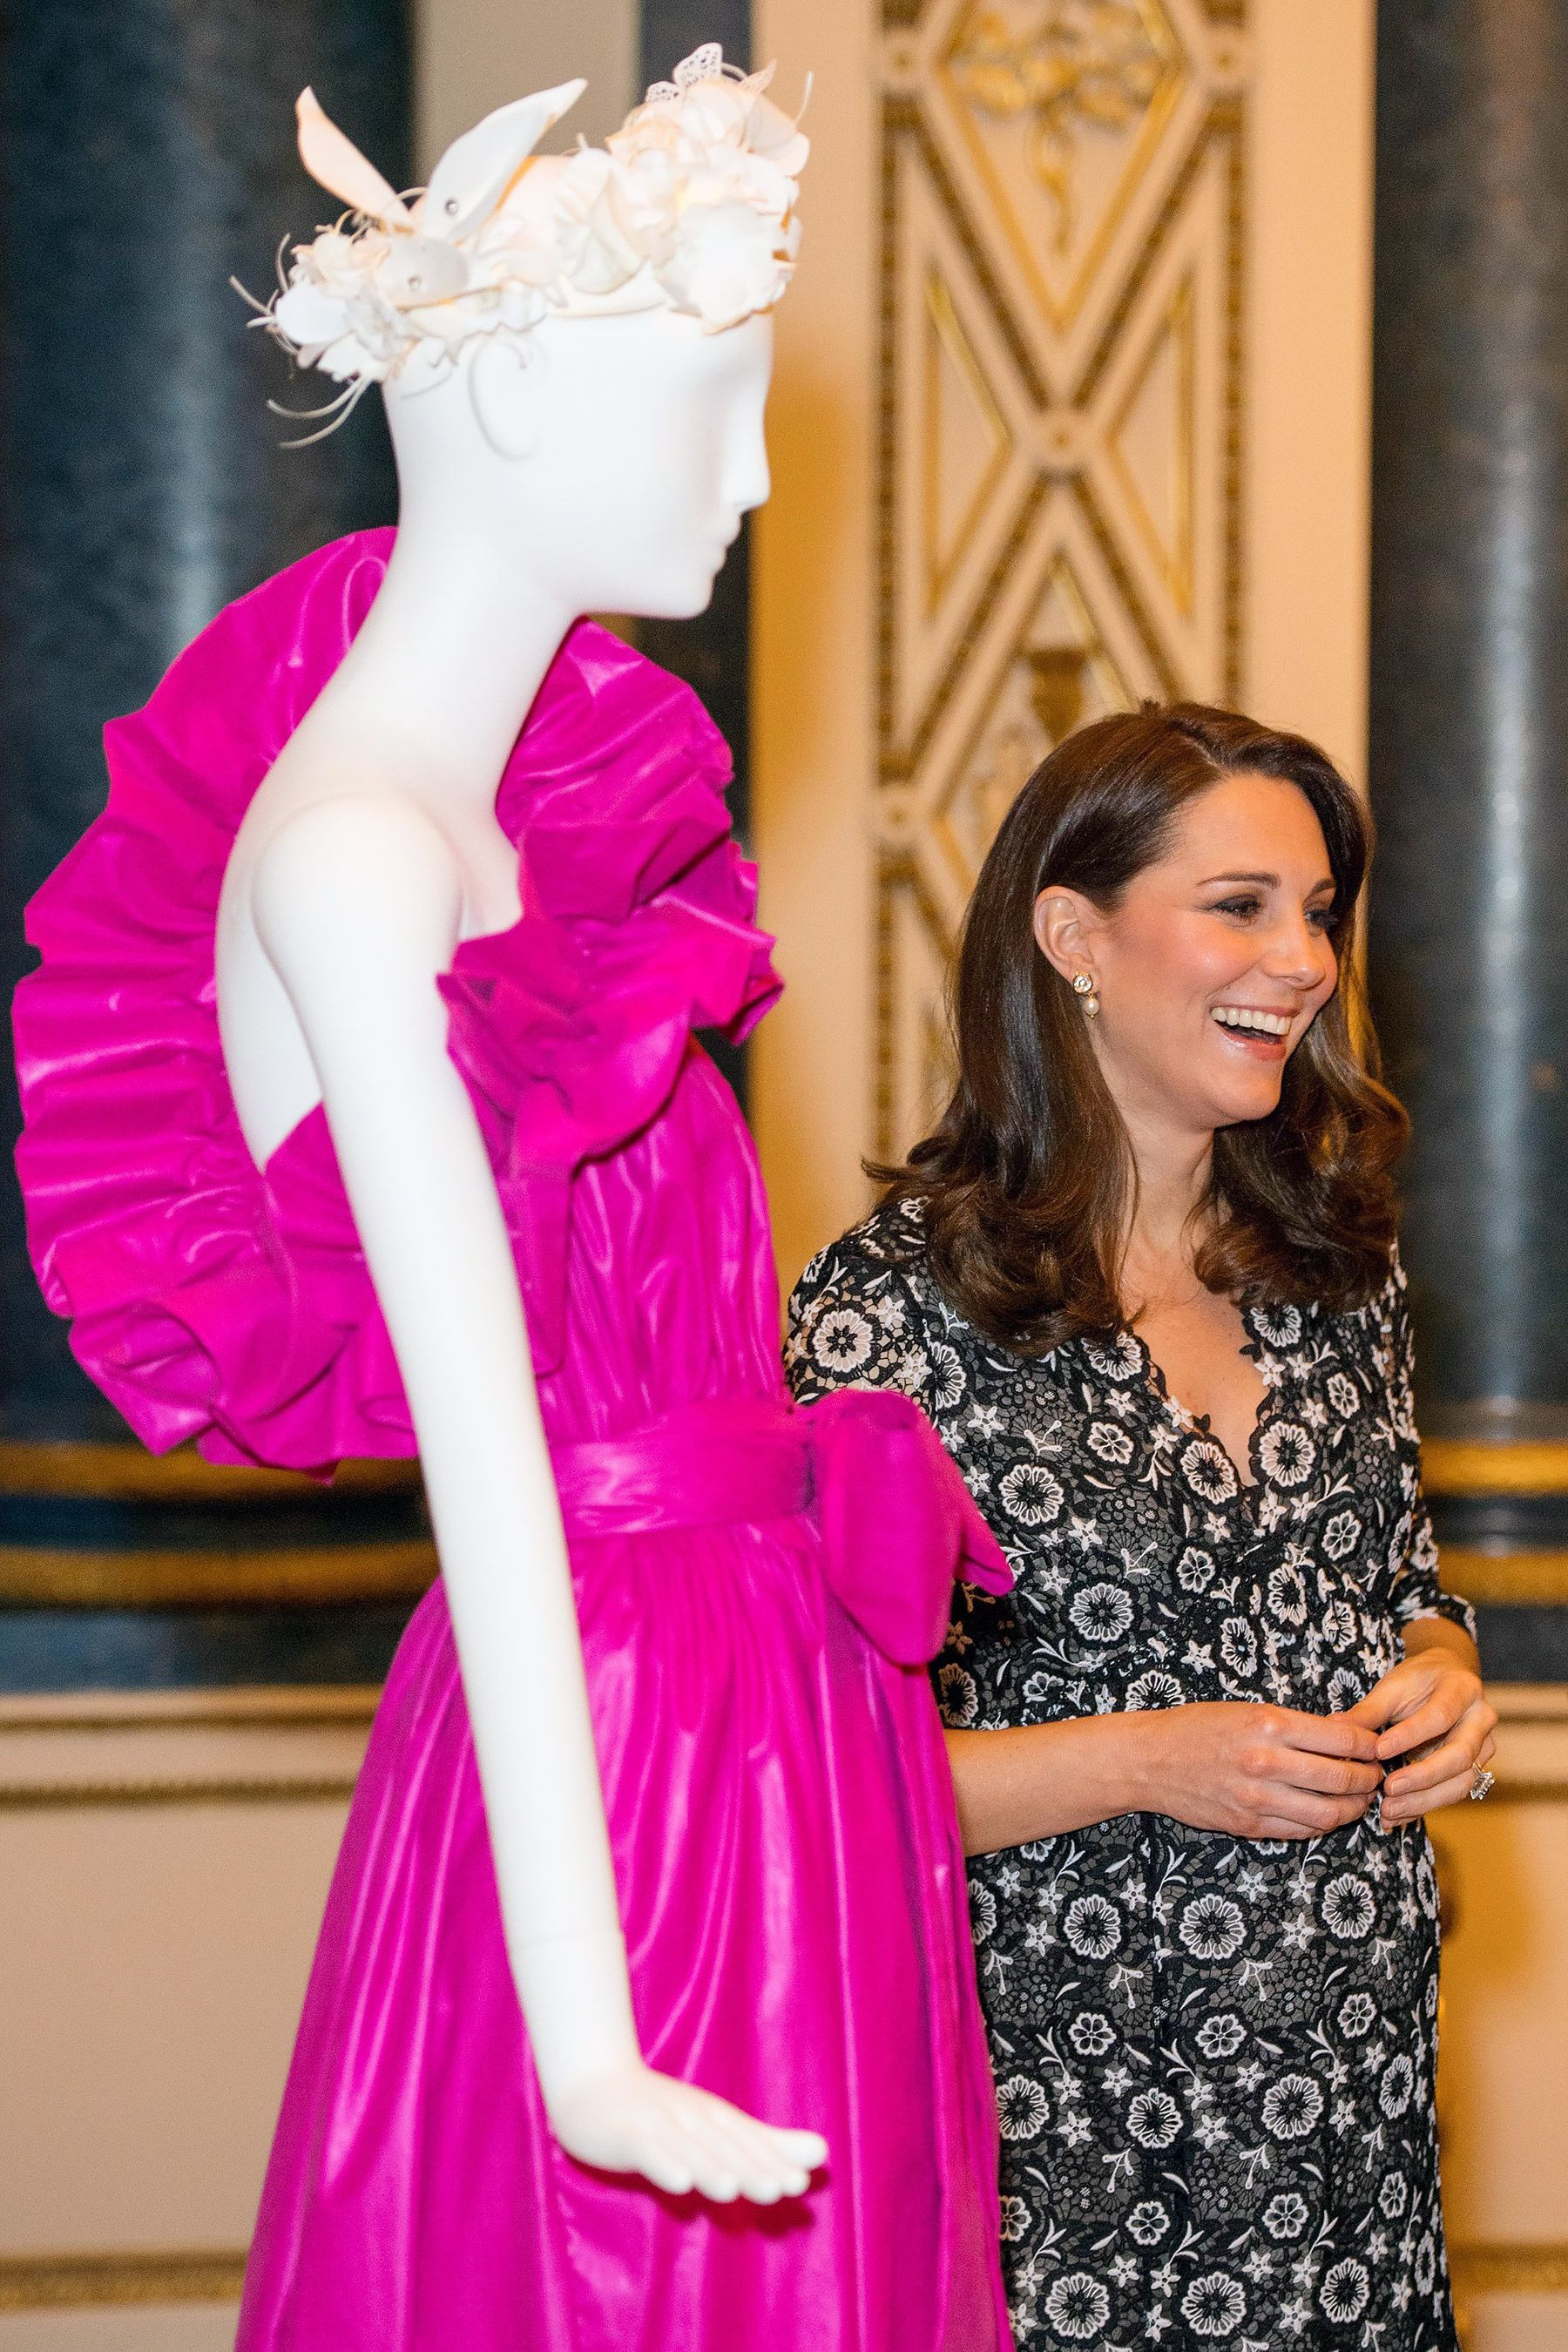 Kate Middleton Steps Out in Black-and-White for Fashion Event Amid ...